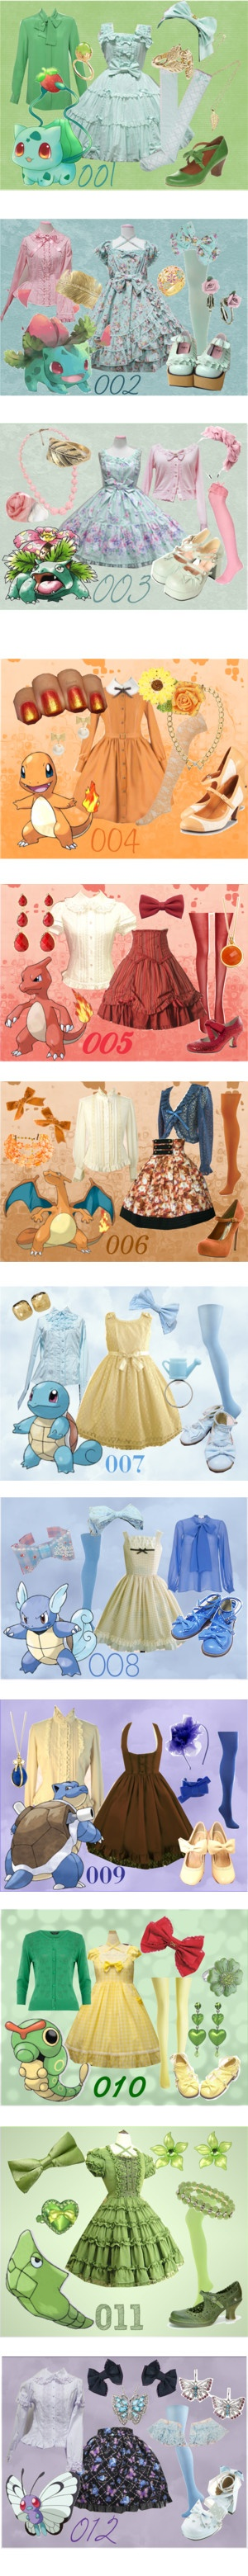 """150 Pokemon Lolitas"" by meiki ❤ liked on Polyvore"